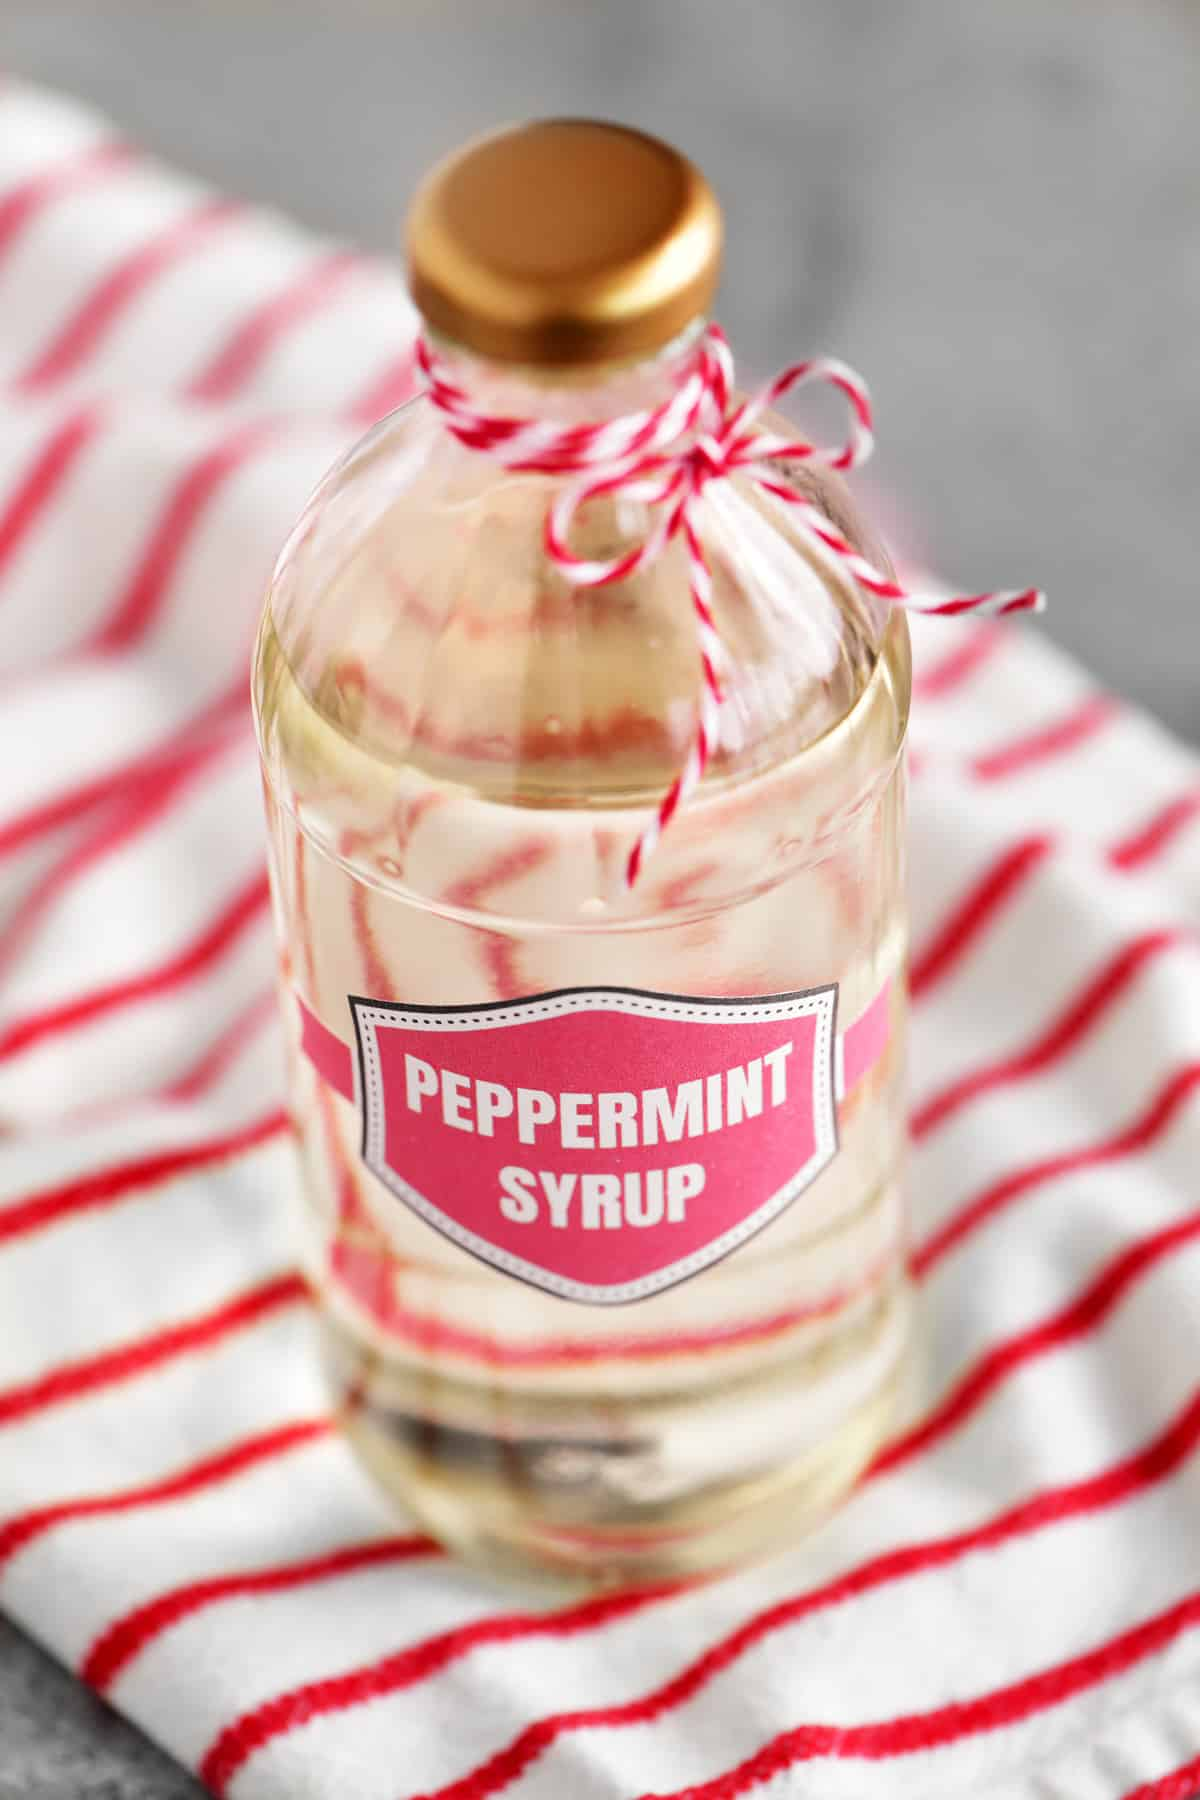 a bottle of peppermint syrup on a red and white striped towel